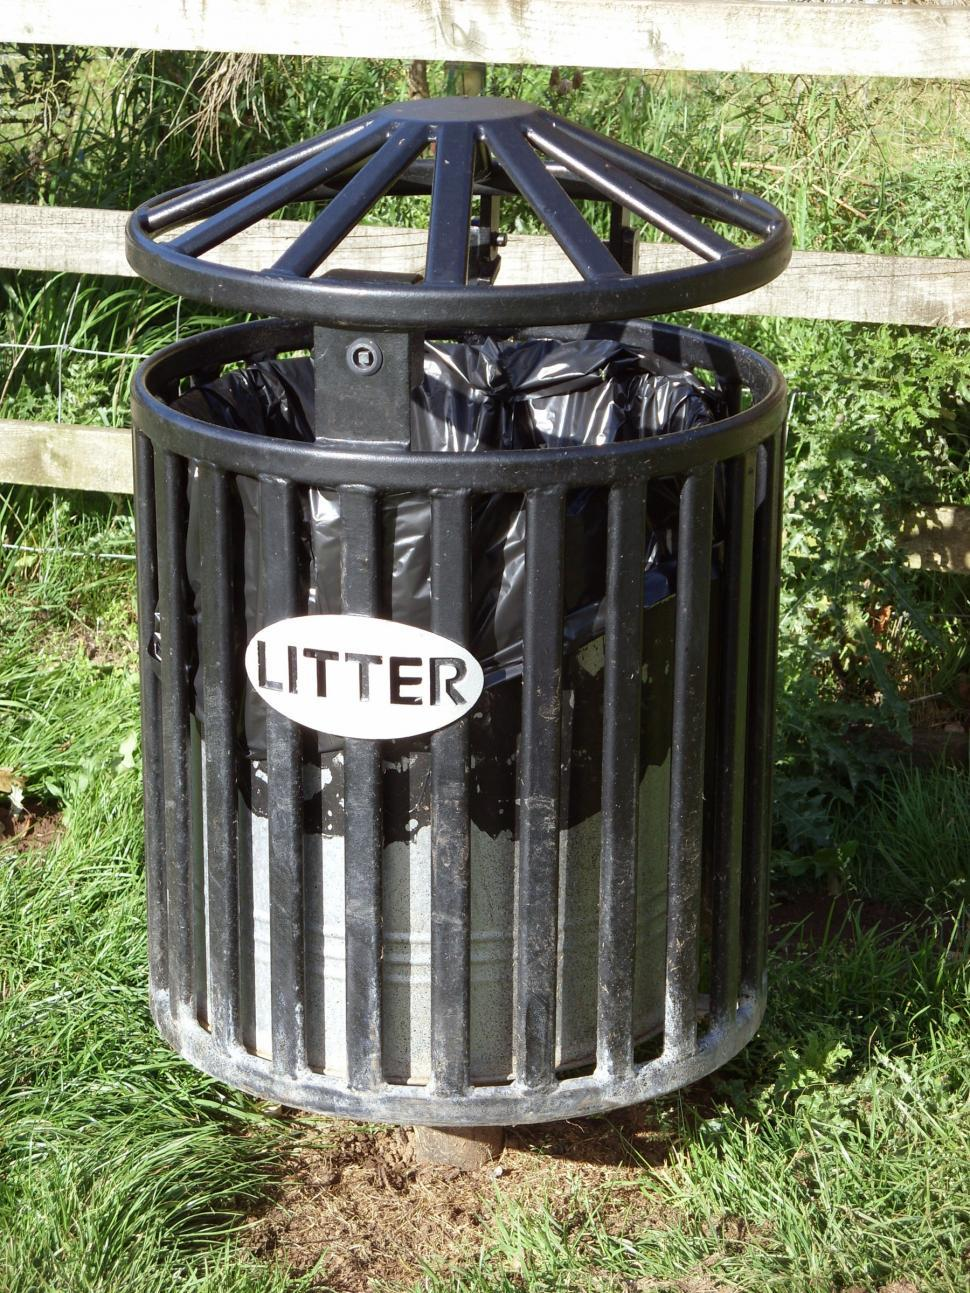 Download Free Stock HD Photo of Litter bin Online